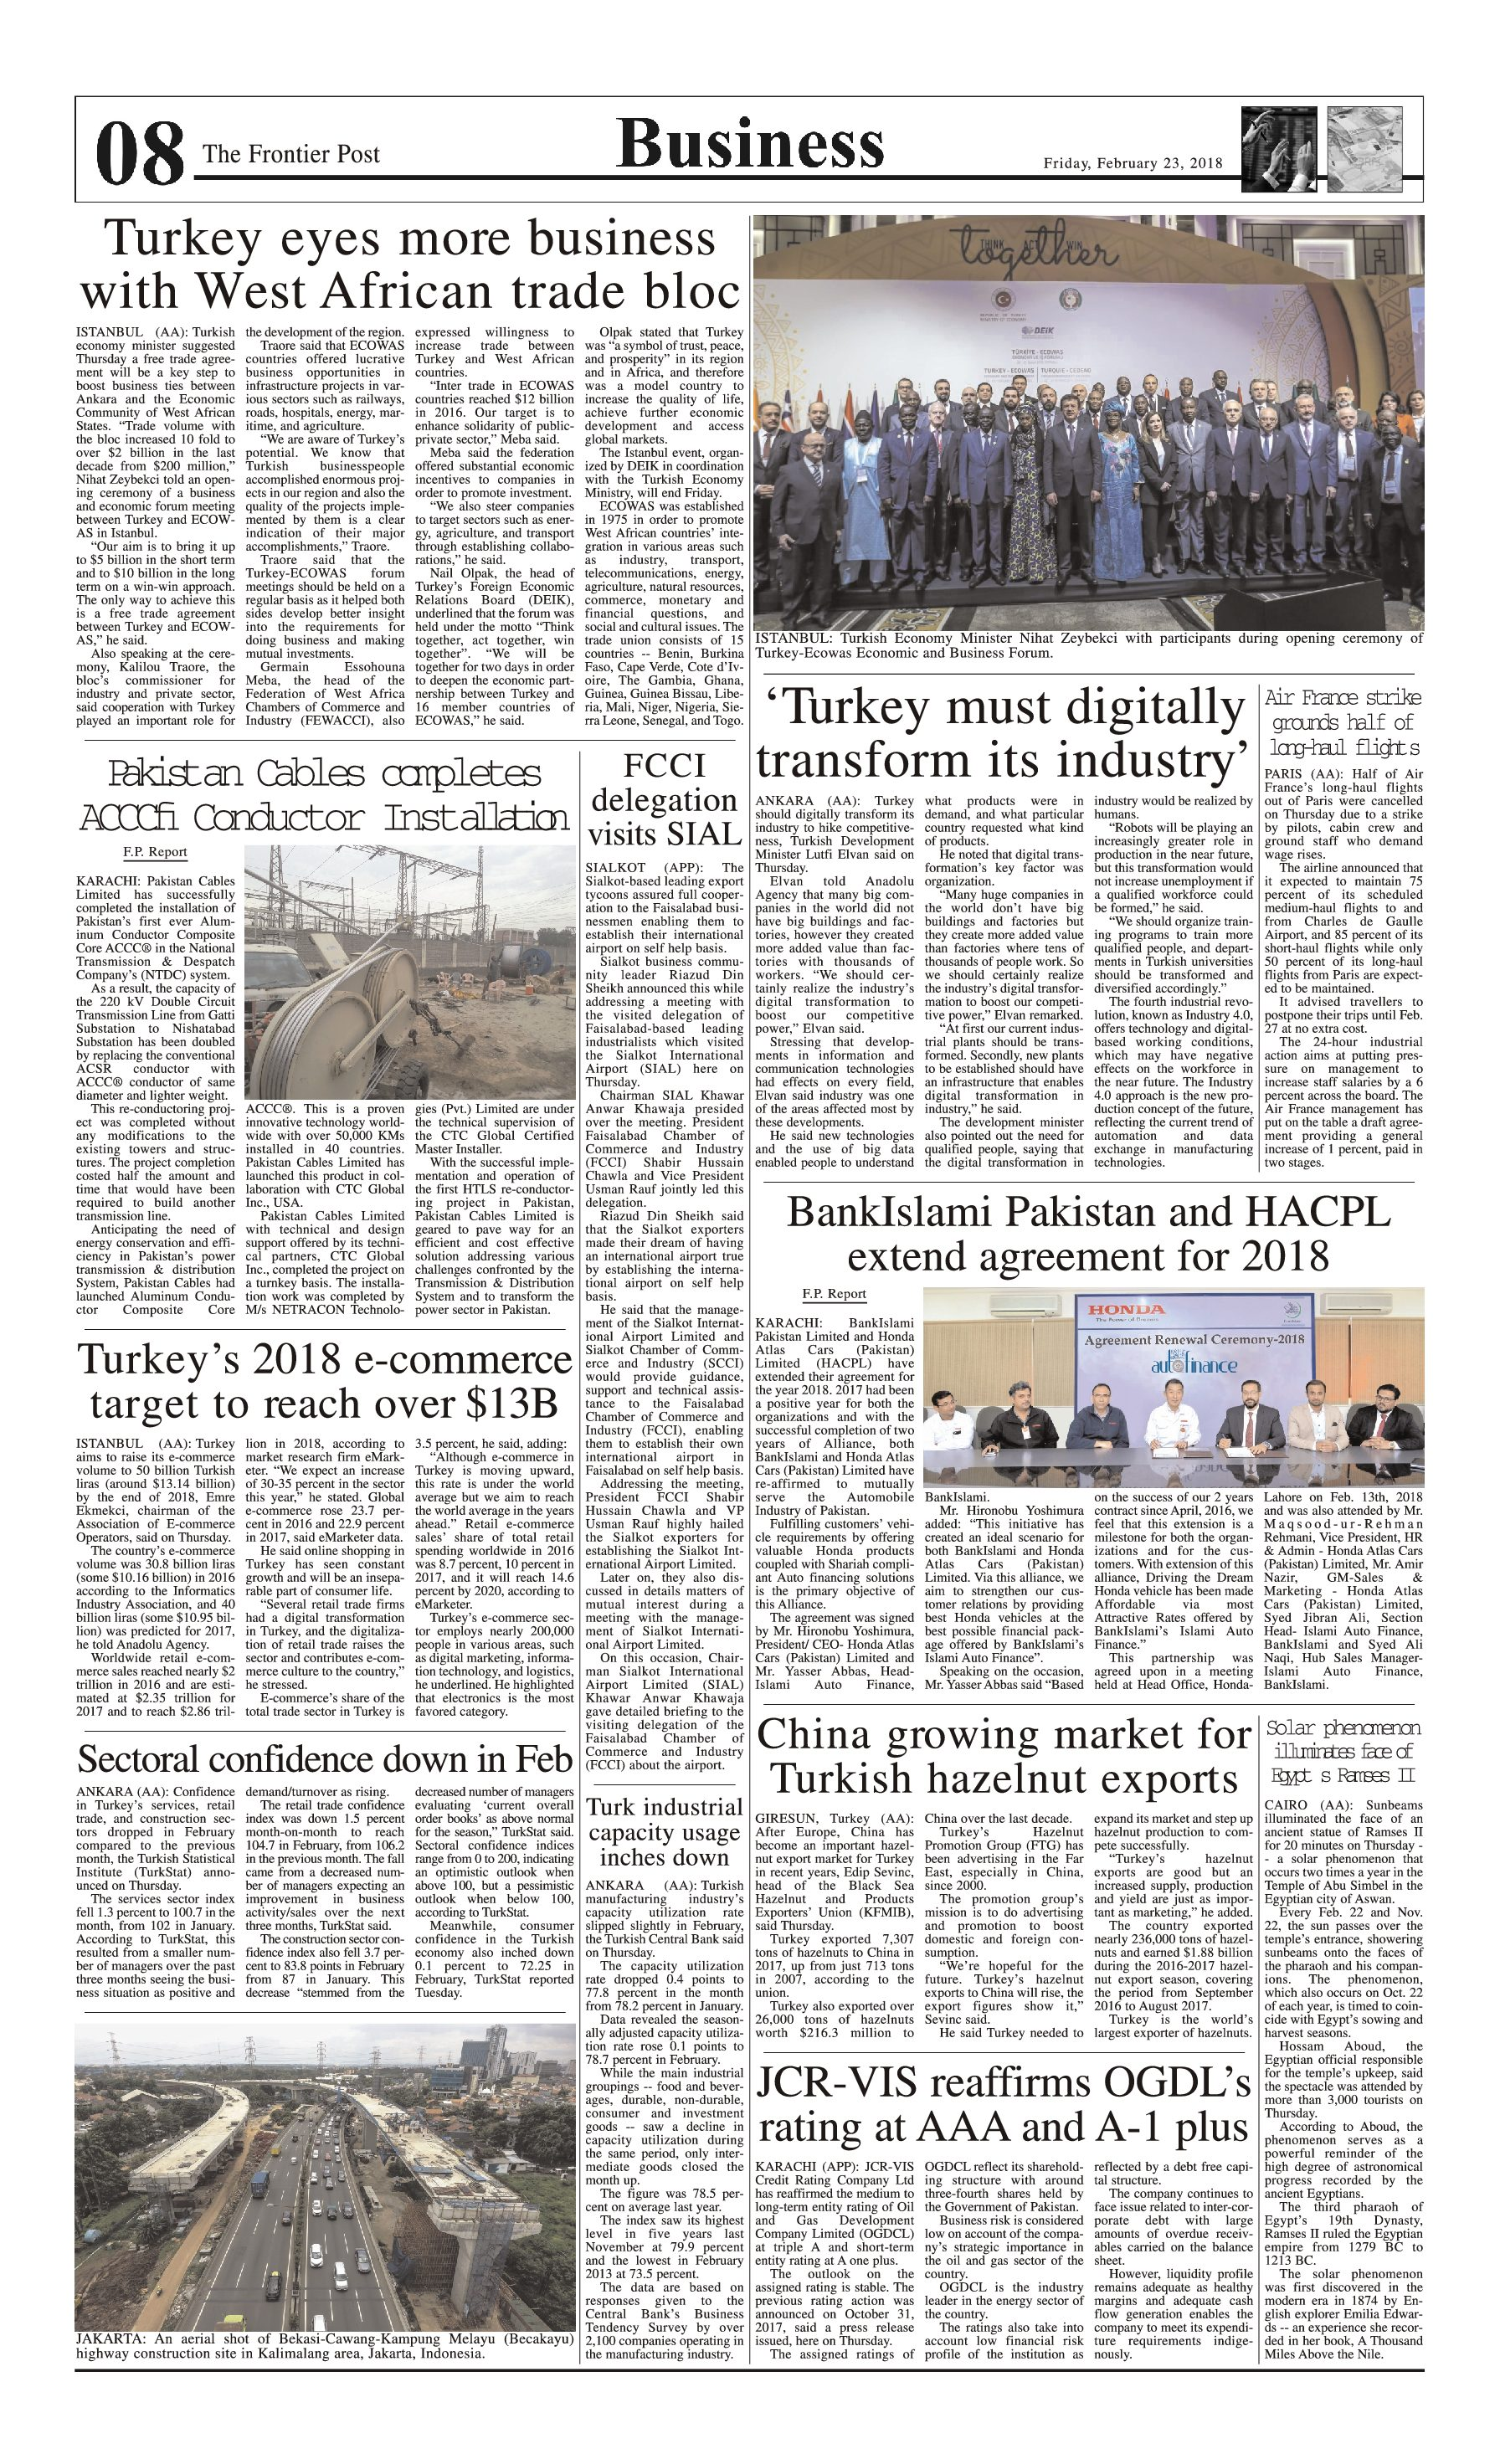 Business Page 23-2